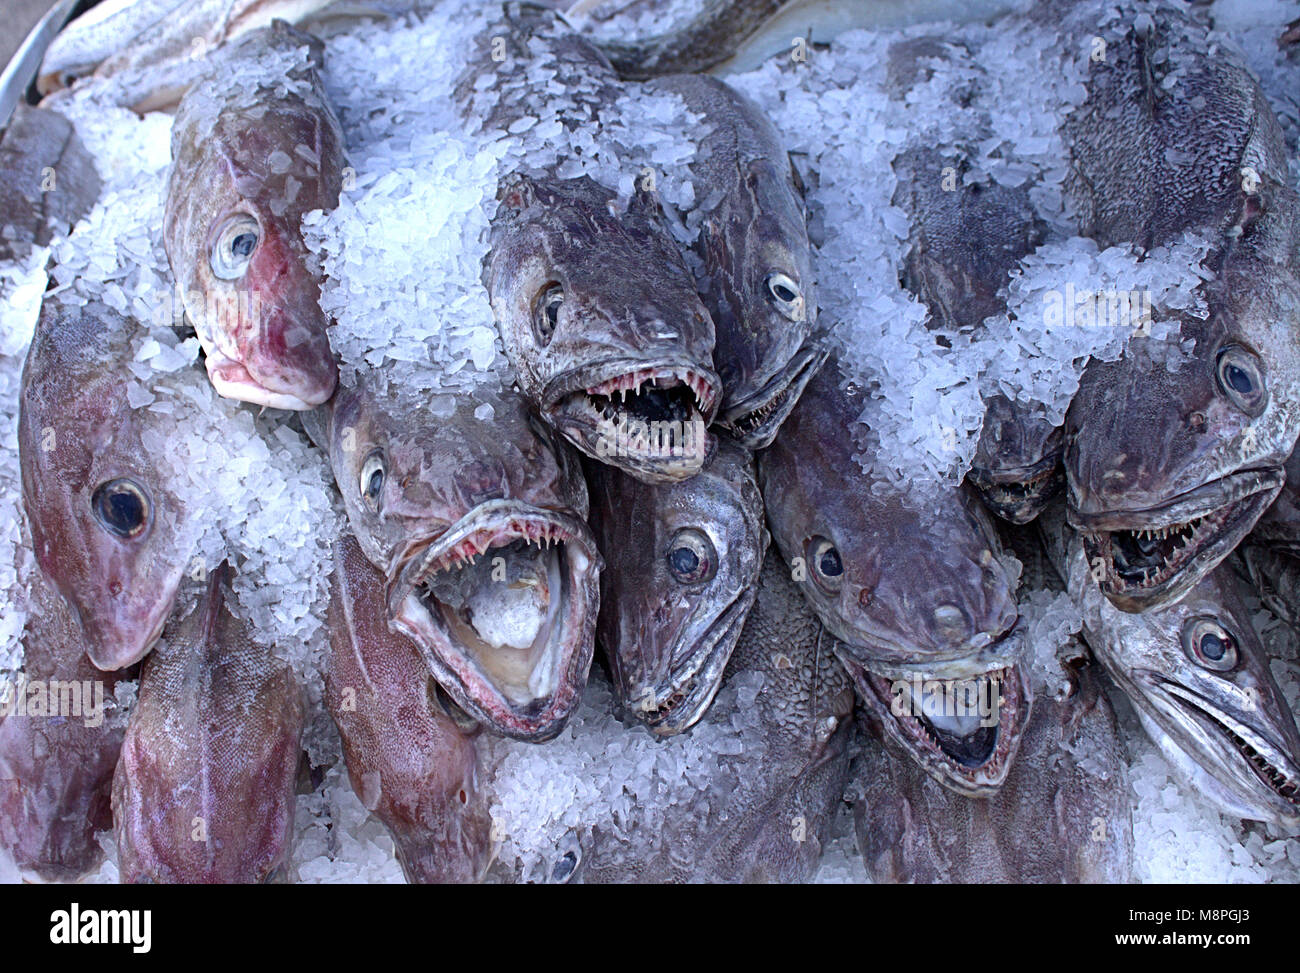 fresh-fish-on-ice-landed-that-day-on-sale-in-the-food-market-west-M8PGJ3.jpg